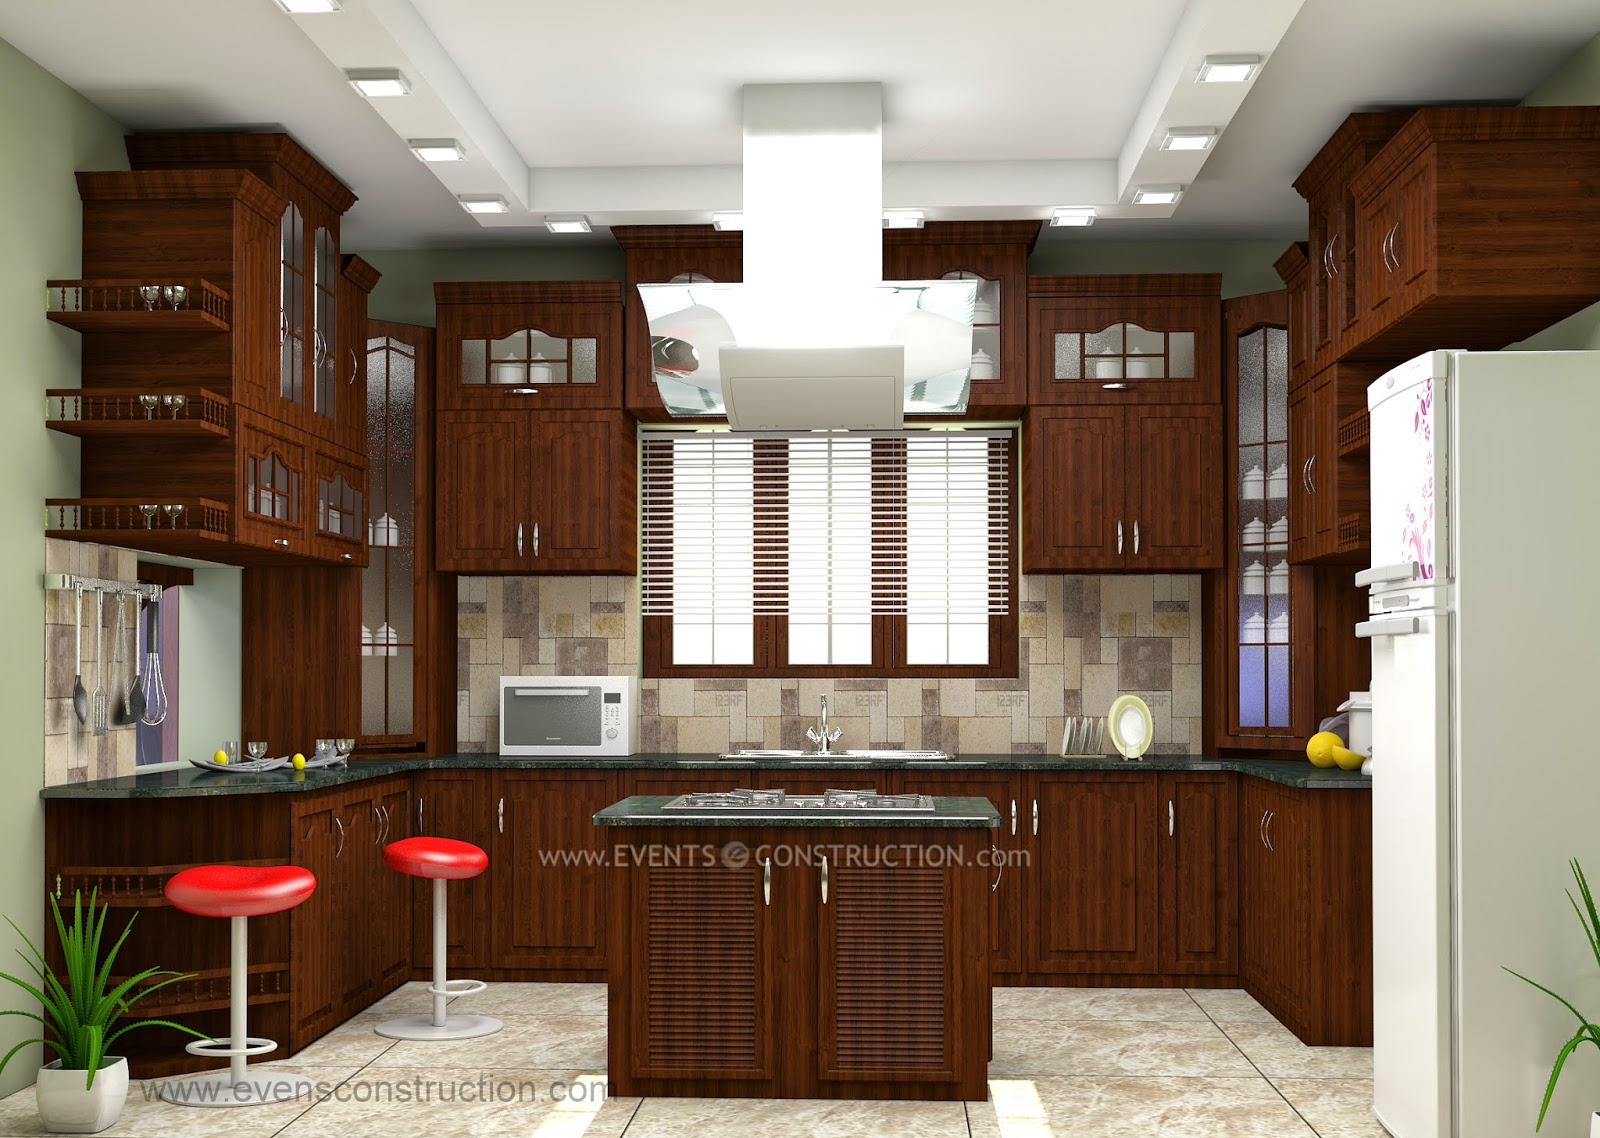 55 Modern Luxury Kitchen Design Concepts Help You Create A Kitchen That S Right For Your